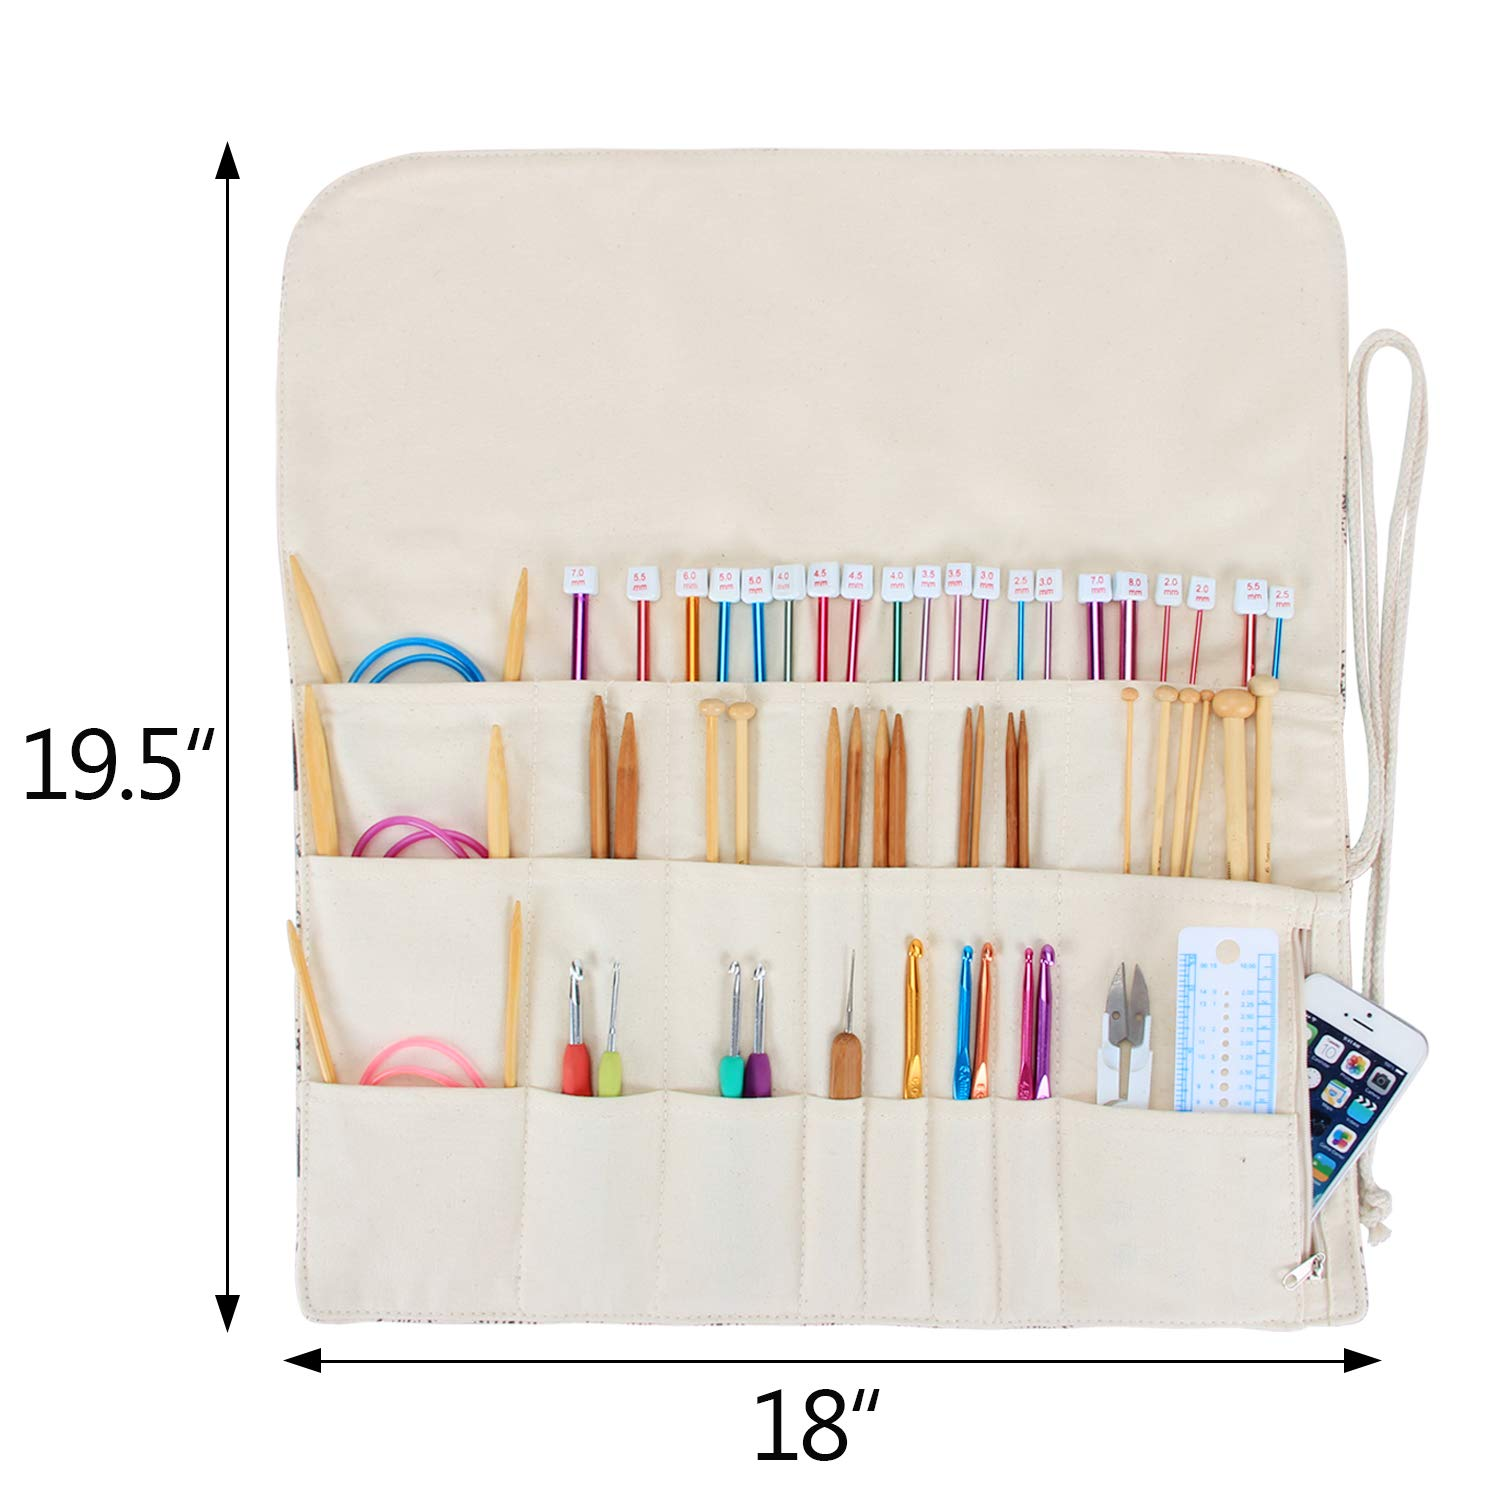 Teamoy Tunisian Crochet Hook Organizer Bag(up to 14 Inches), Cotton Canvas Roll Wrap for Afghan Crochet Hooks, Knitting Needles and Accessories, Tree by Teamoy (Image #9)